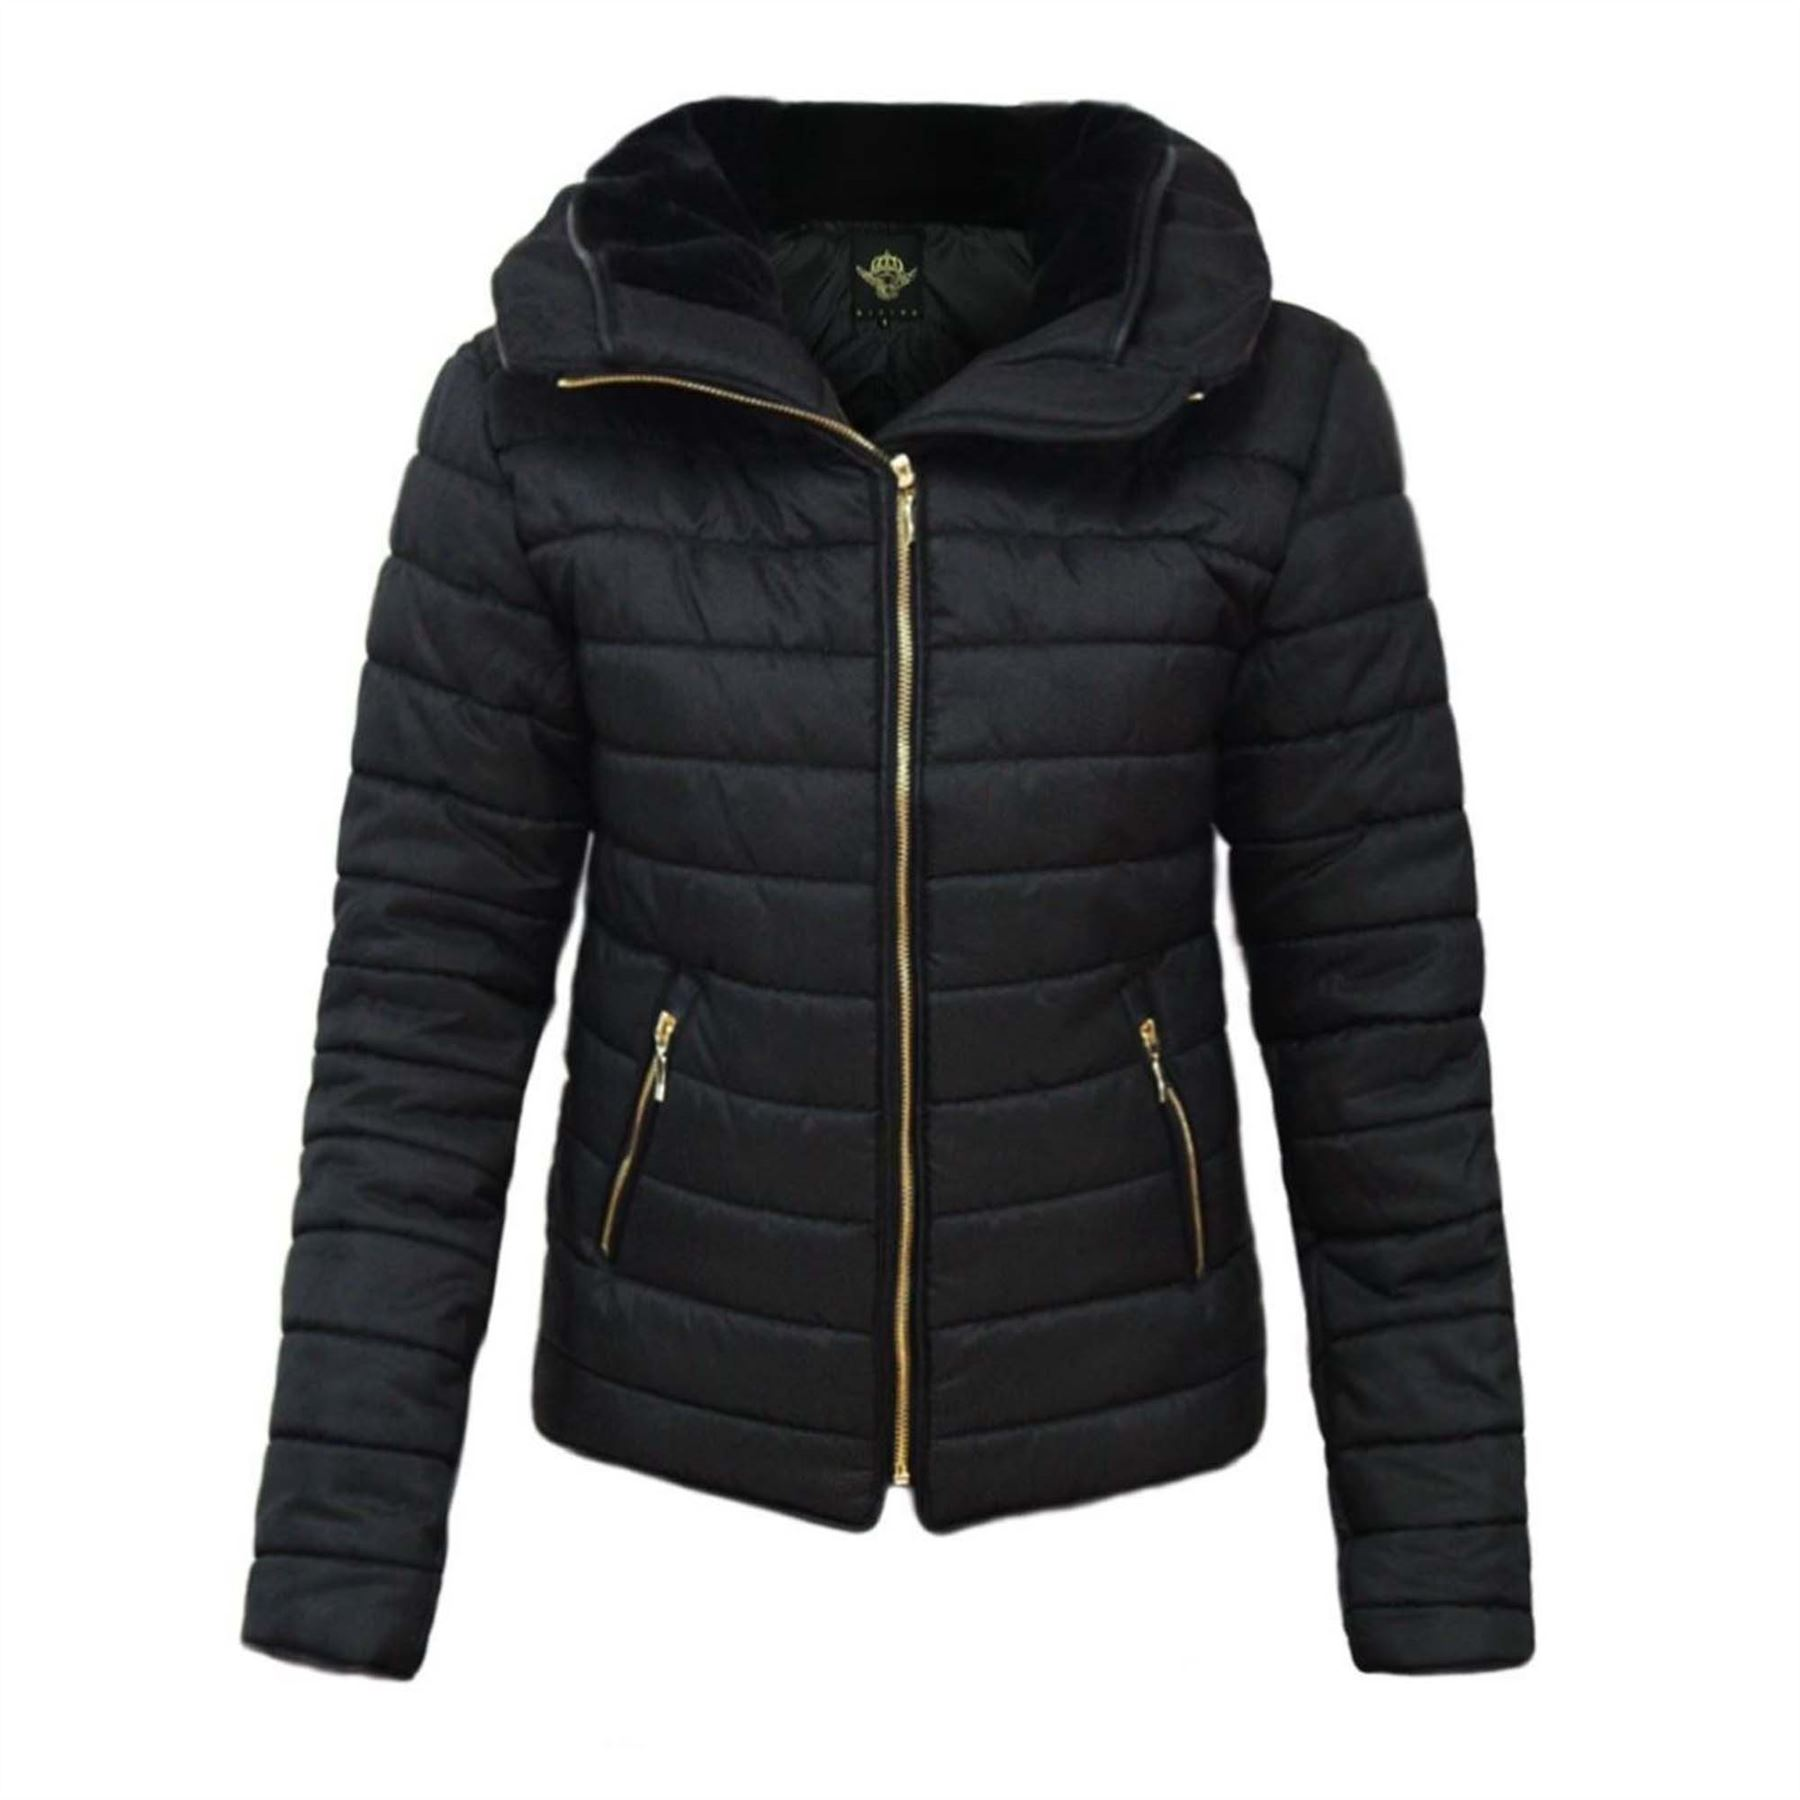 Shop Target for girls' coats & jackets you will love at great low prices. Free shipping on purchases over $35 and free pick-up in store same-day.